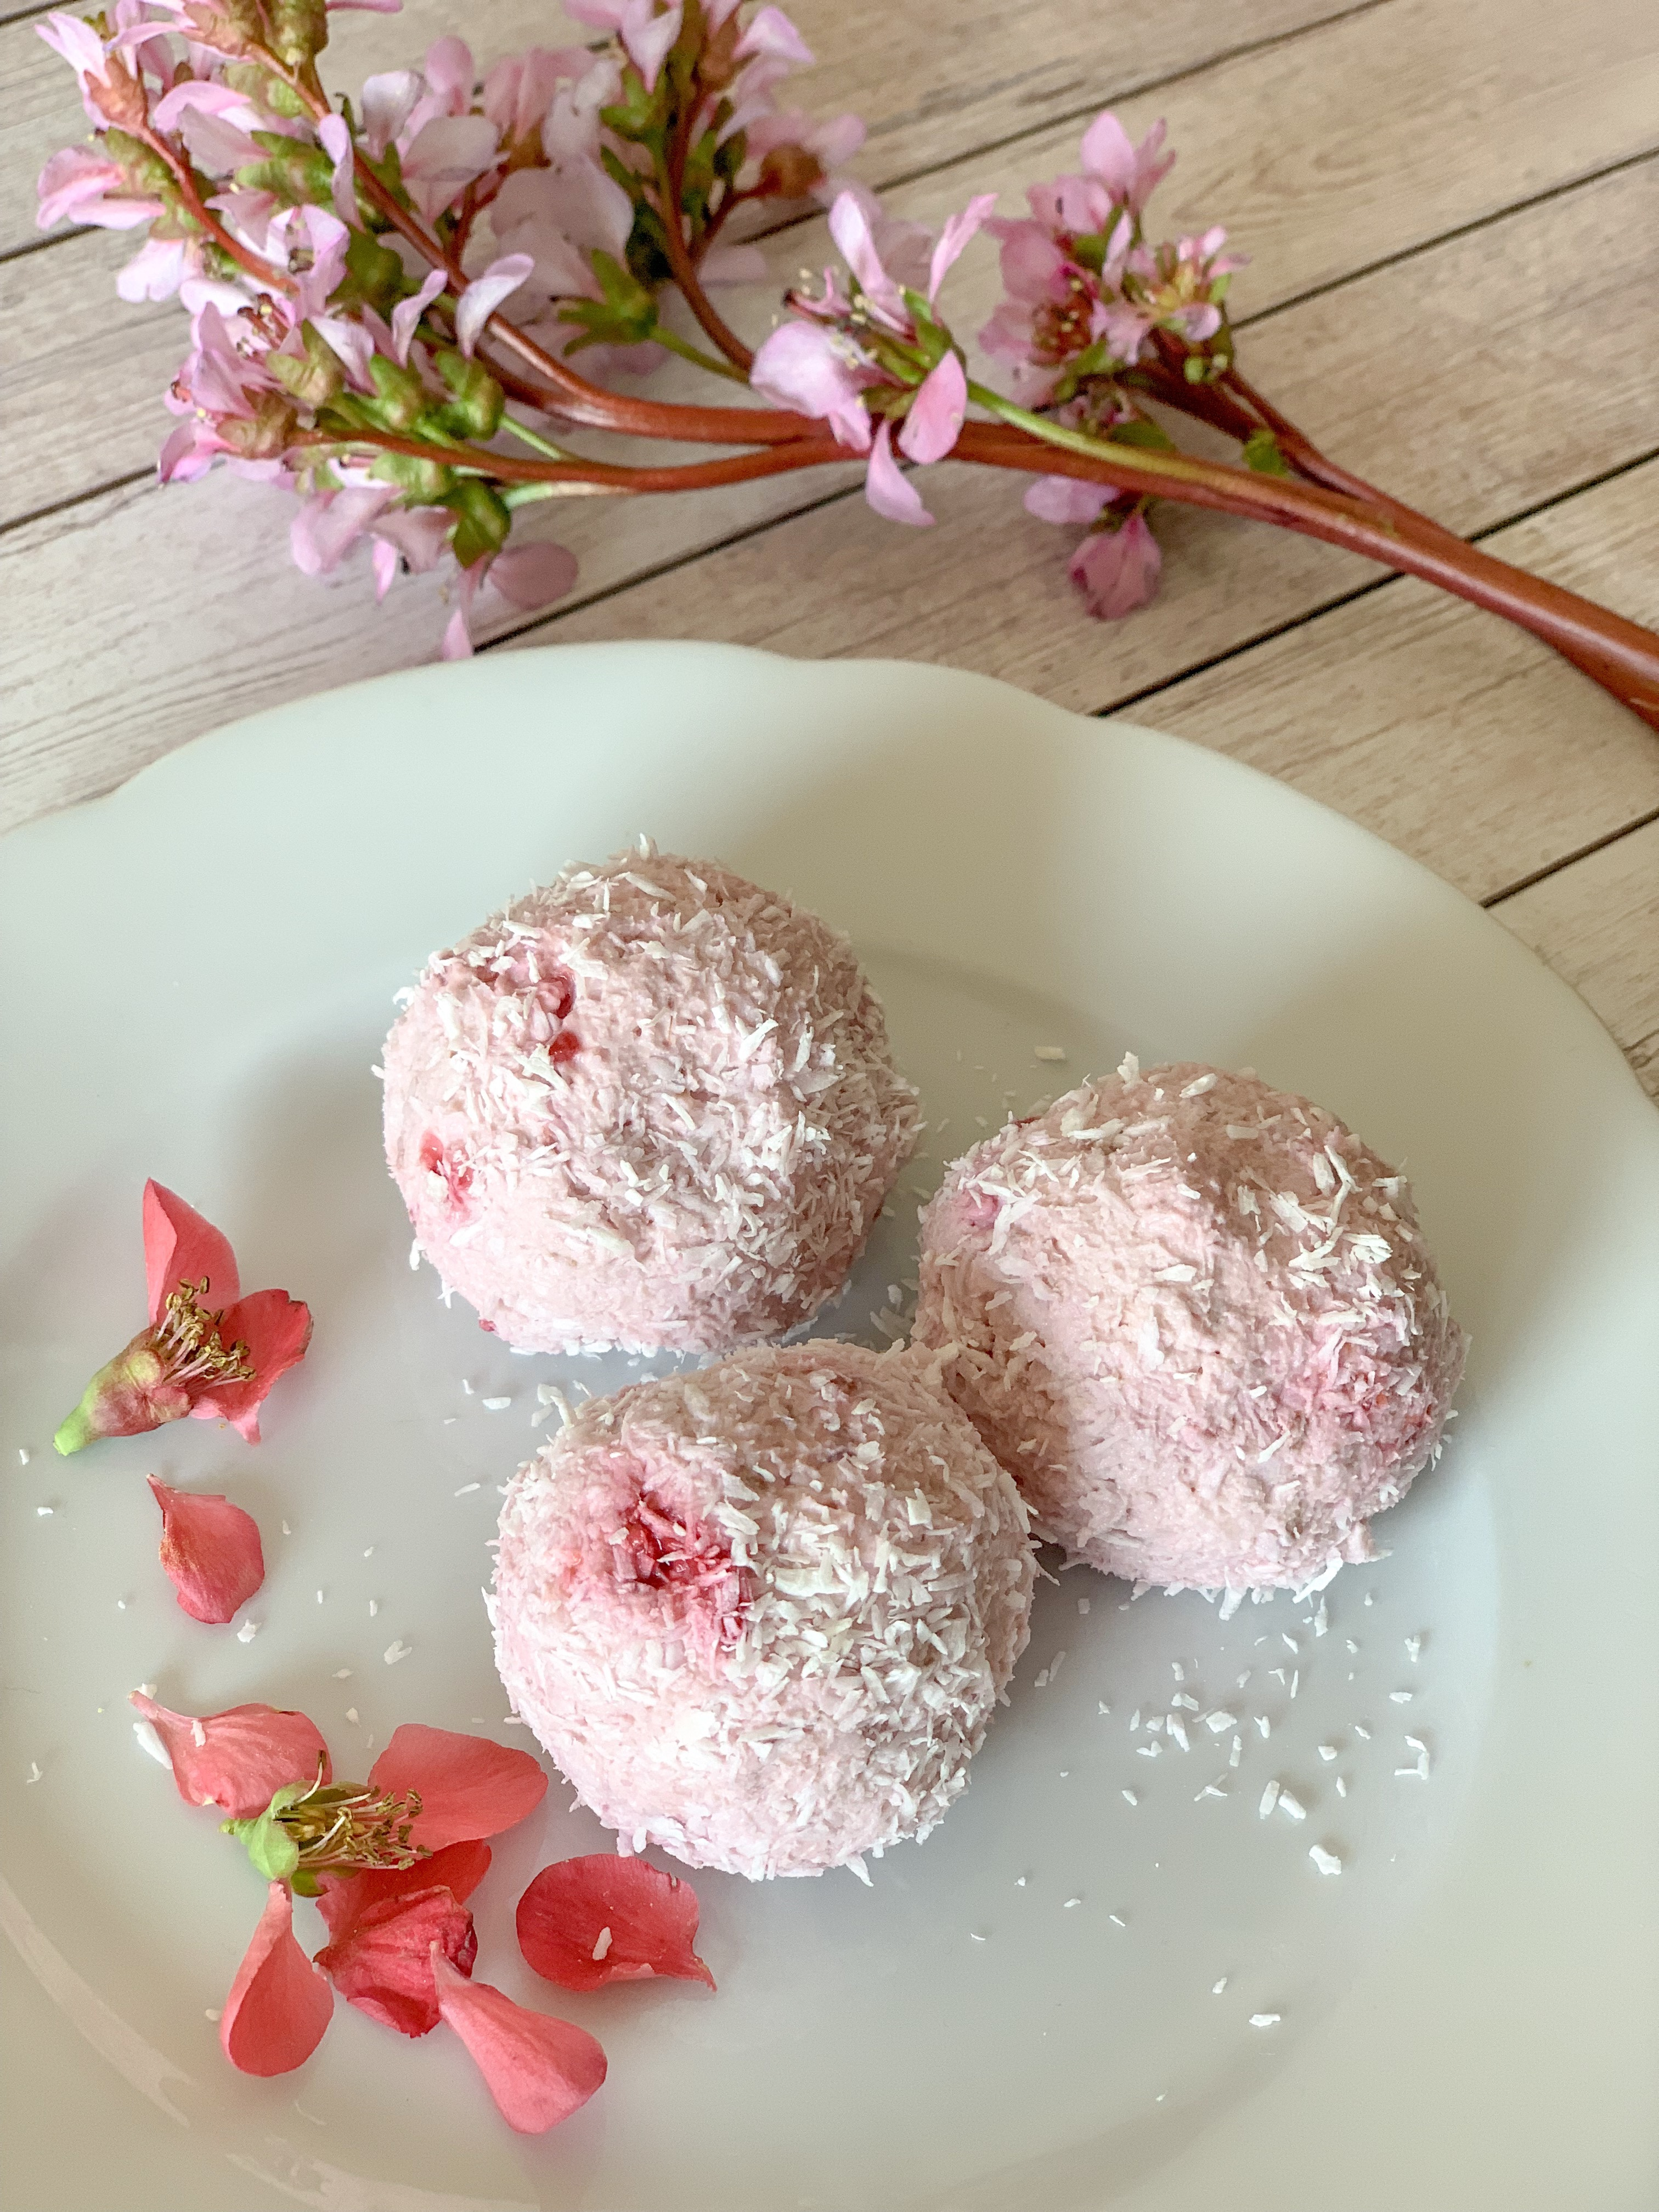 Picture of keto fat bombs with raspberries and mascarpone